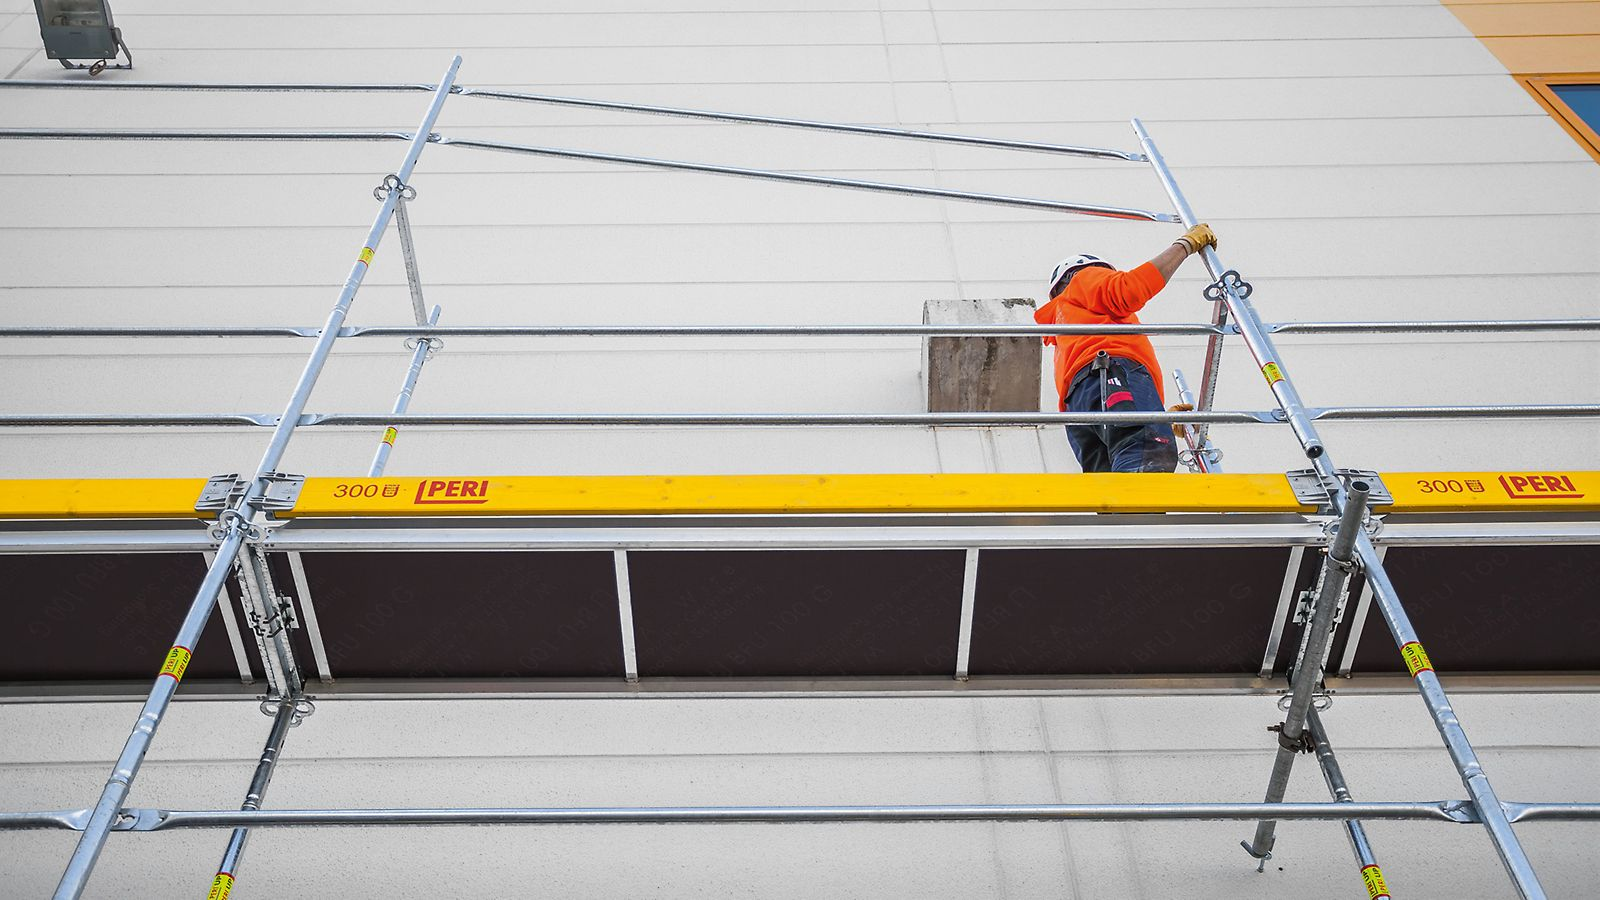 More safety - Fall protection without any additional components in the protection of the guardrail mounted in advance